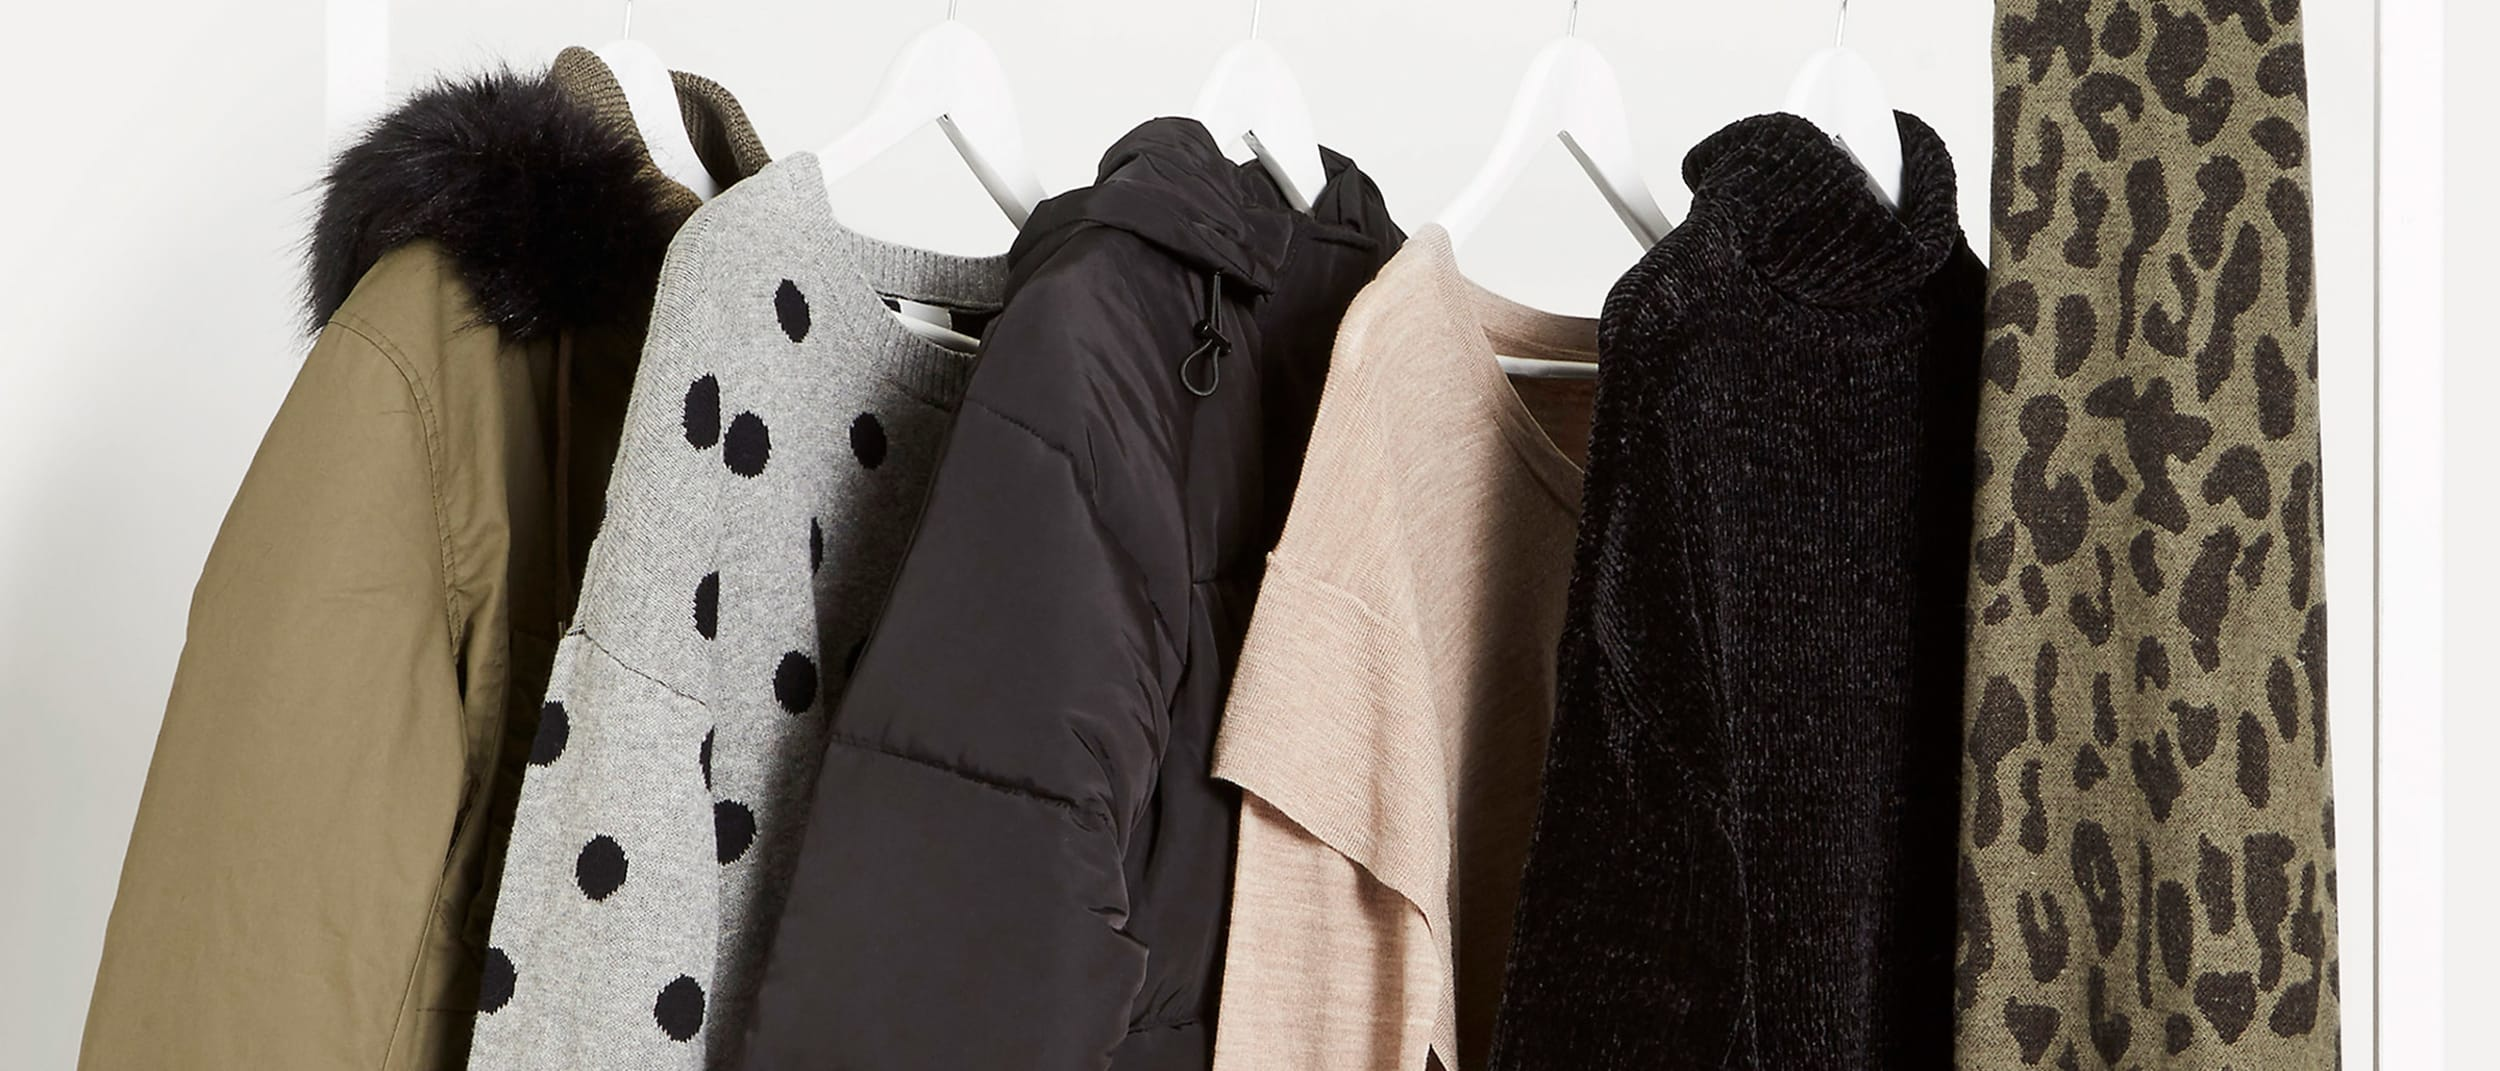 Seed: 25% off full price women's jackets, knitwear and scarves*